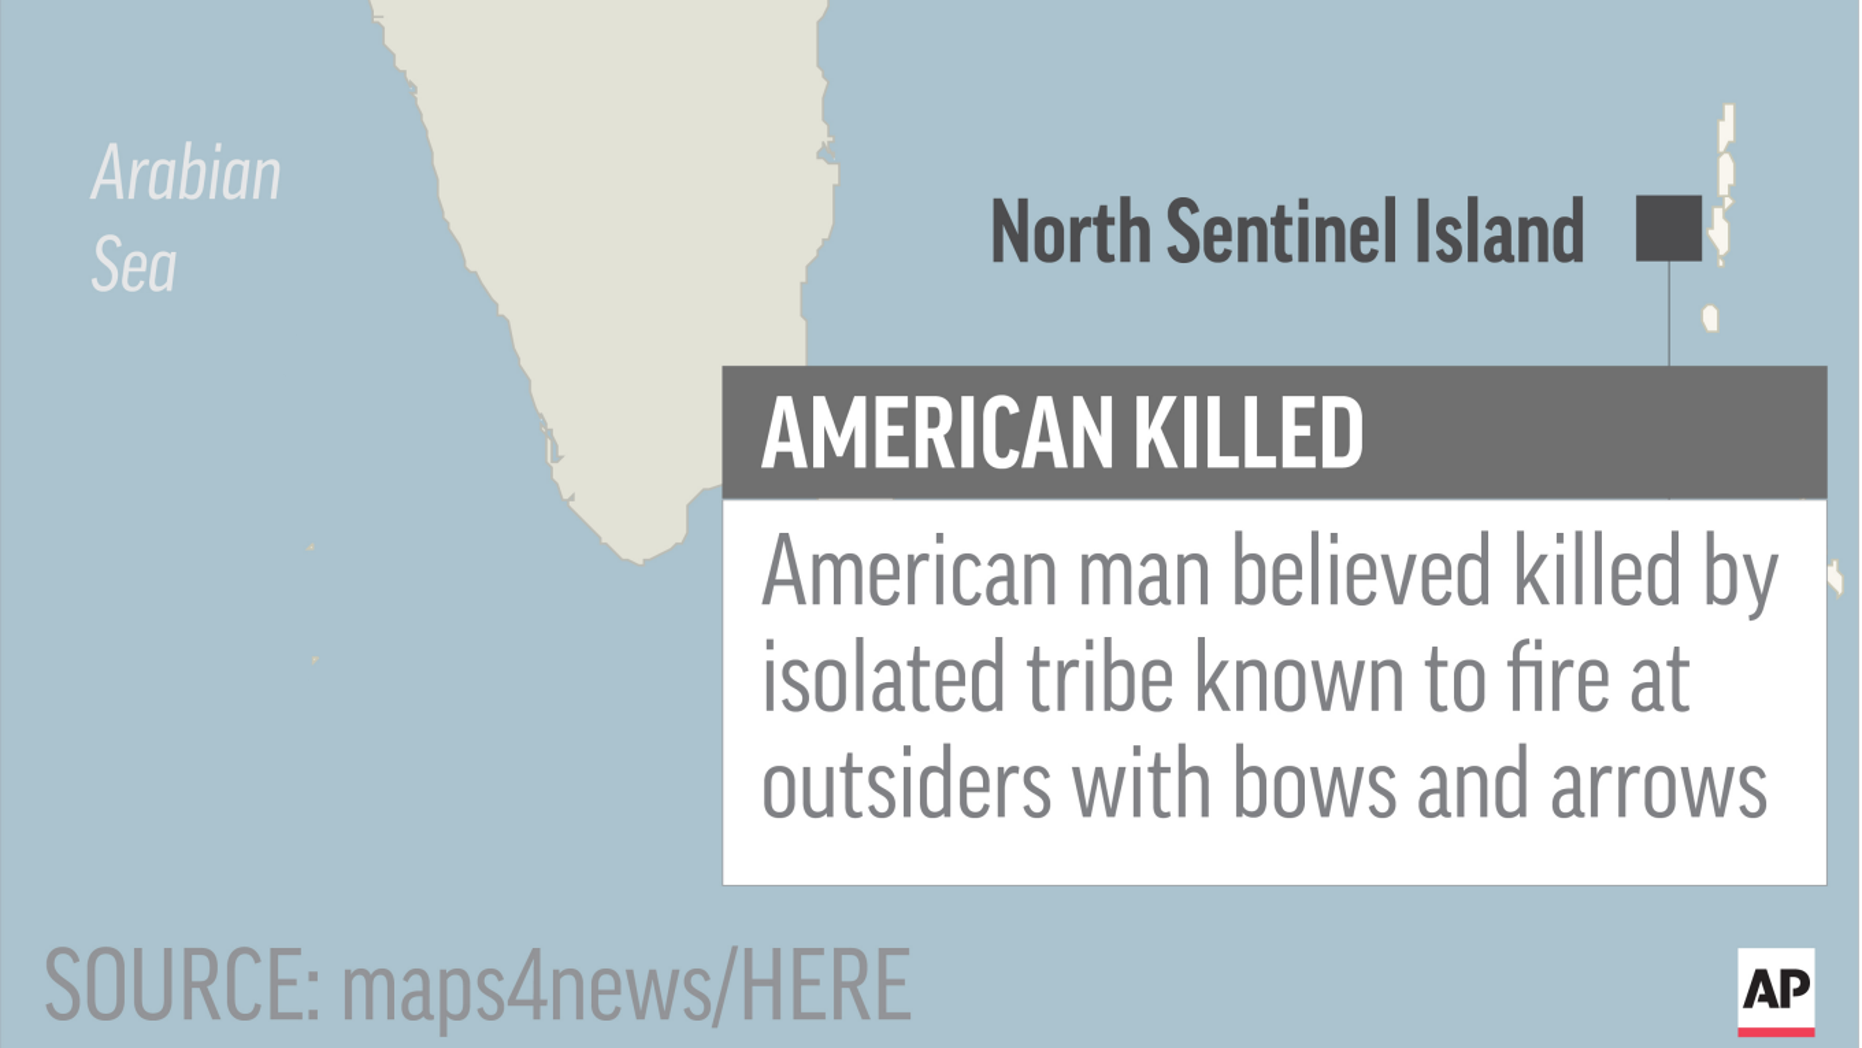 Map locates North Sentinel Island, India, where an American was believed killed by isolated tribe; 1c x 2 inches; 46.5 mm x 50 mm;